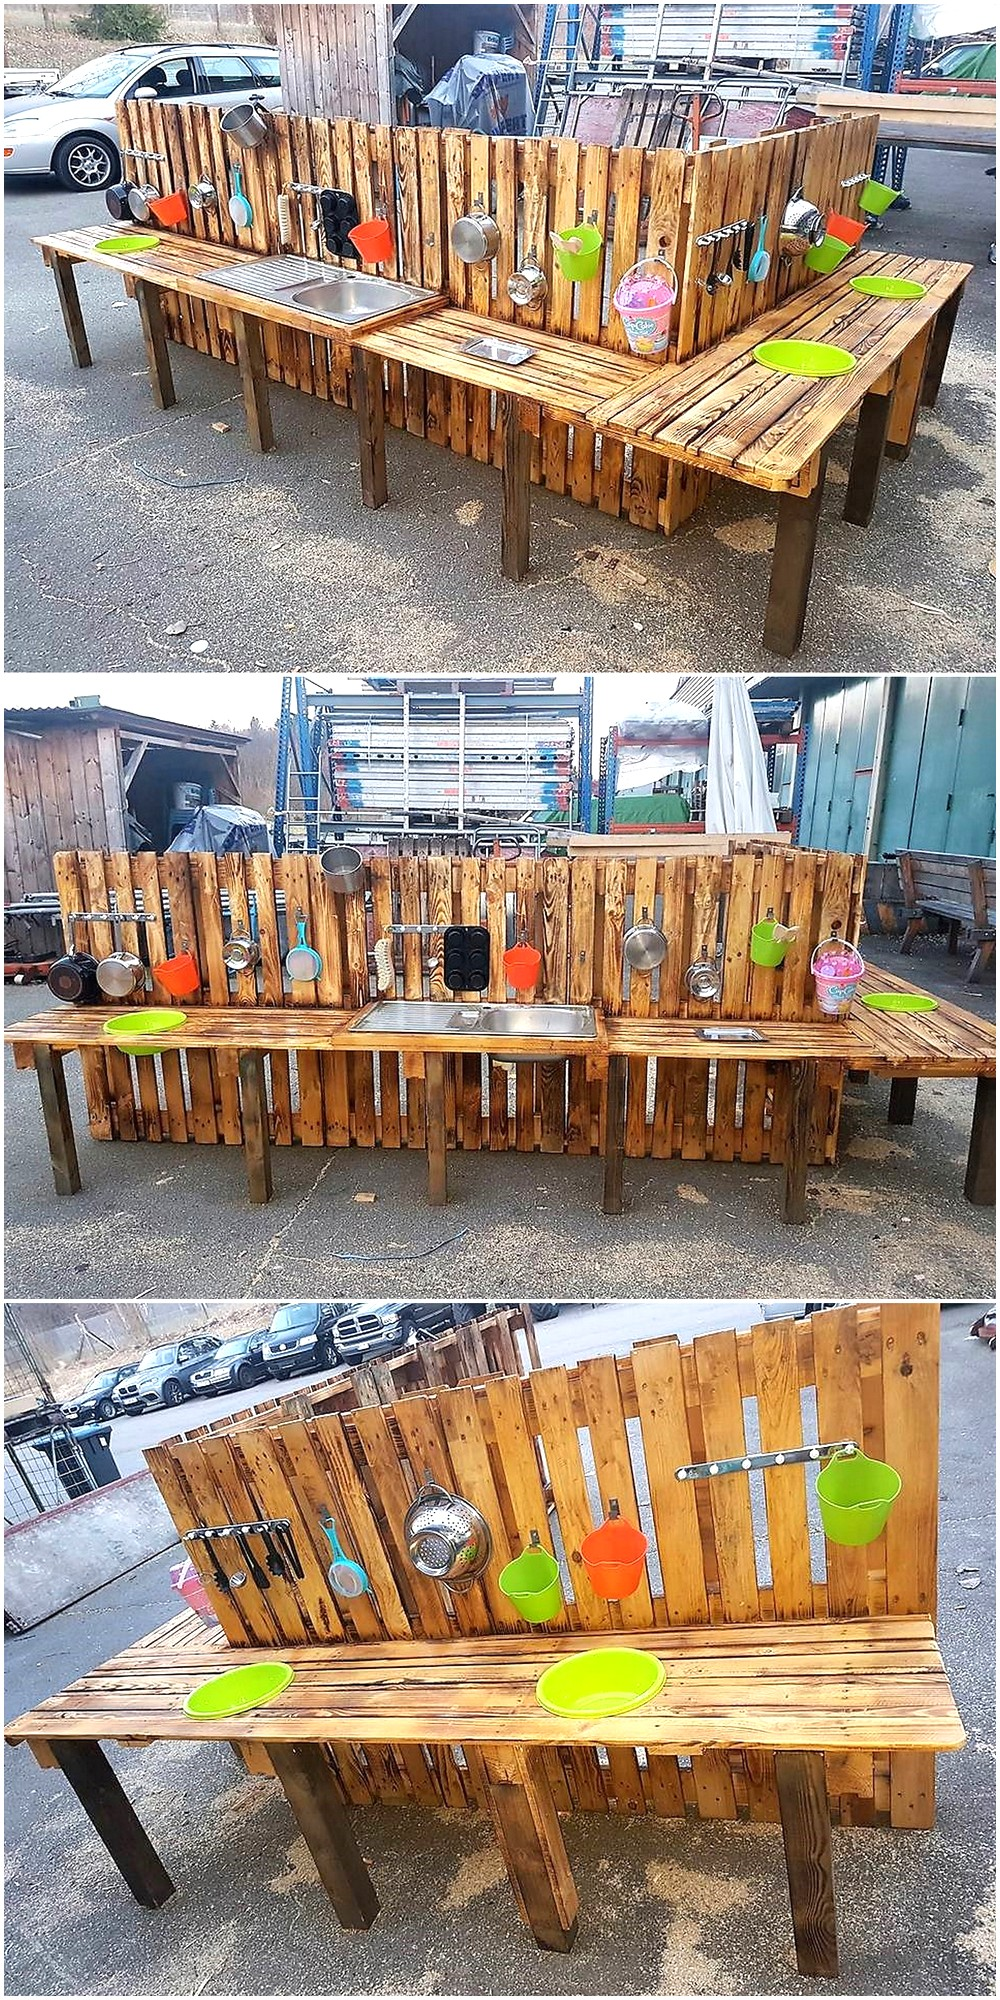 Mud Kitchen for Kids Out of Wood Pallets